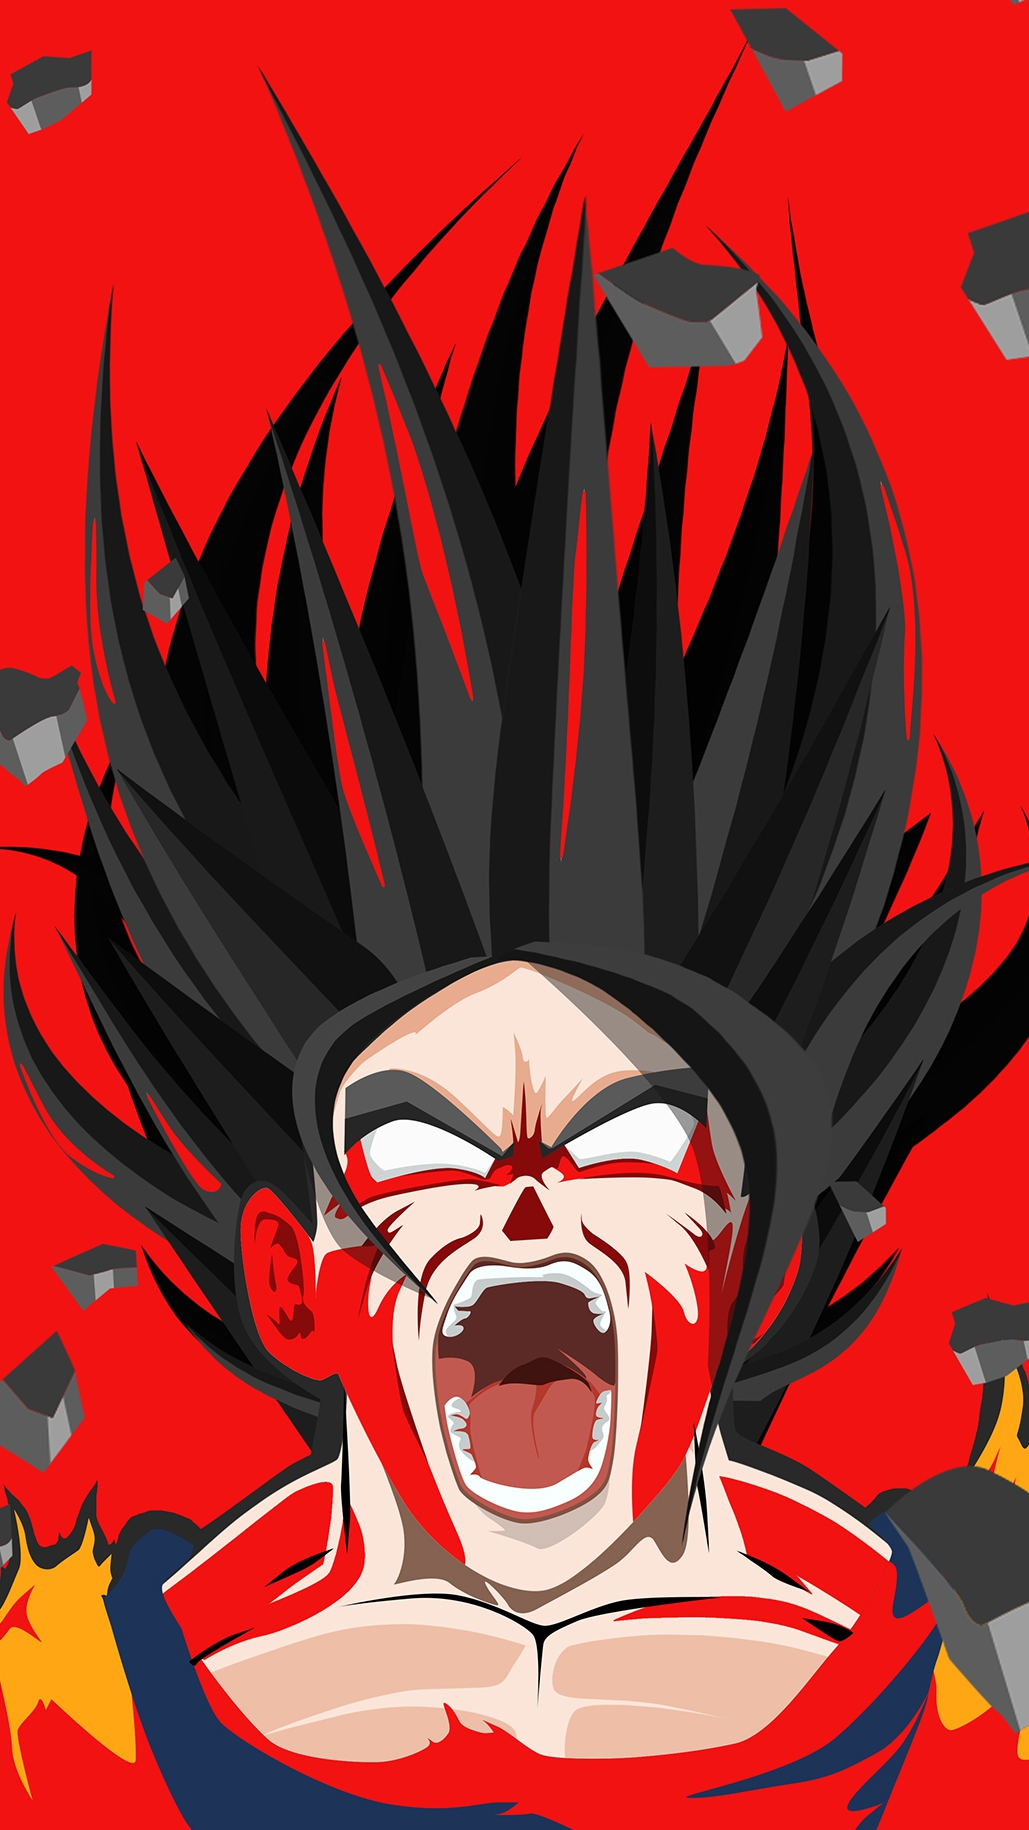 Angry Goku Dragon Ball Z iPhone Wallpaper iphoneswallpapers com